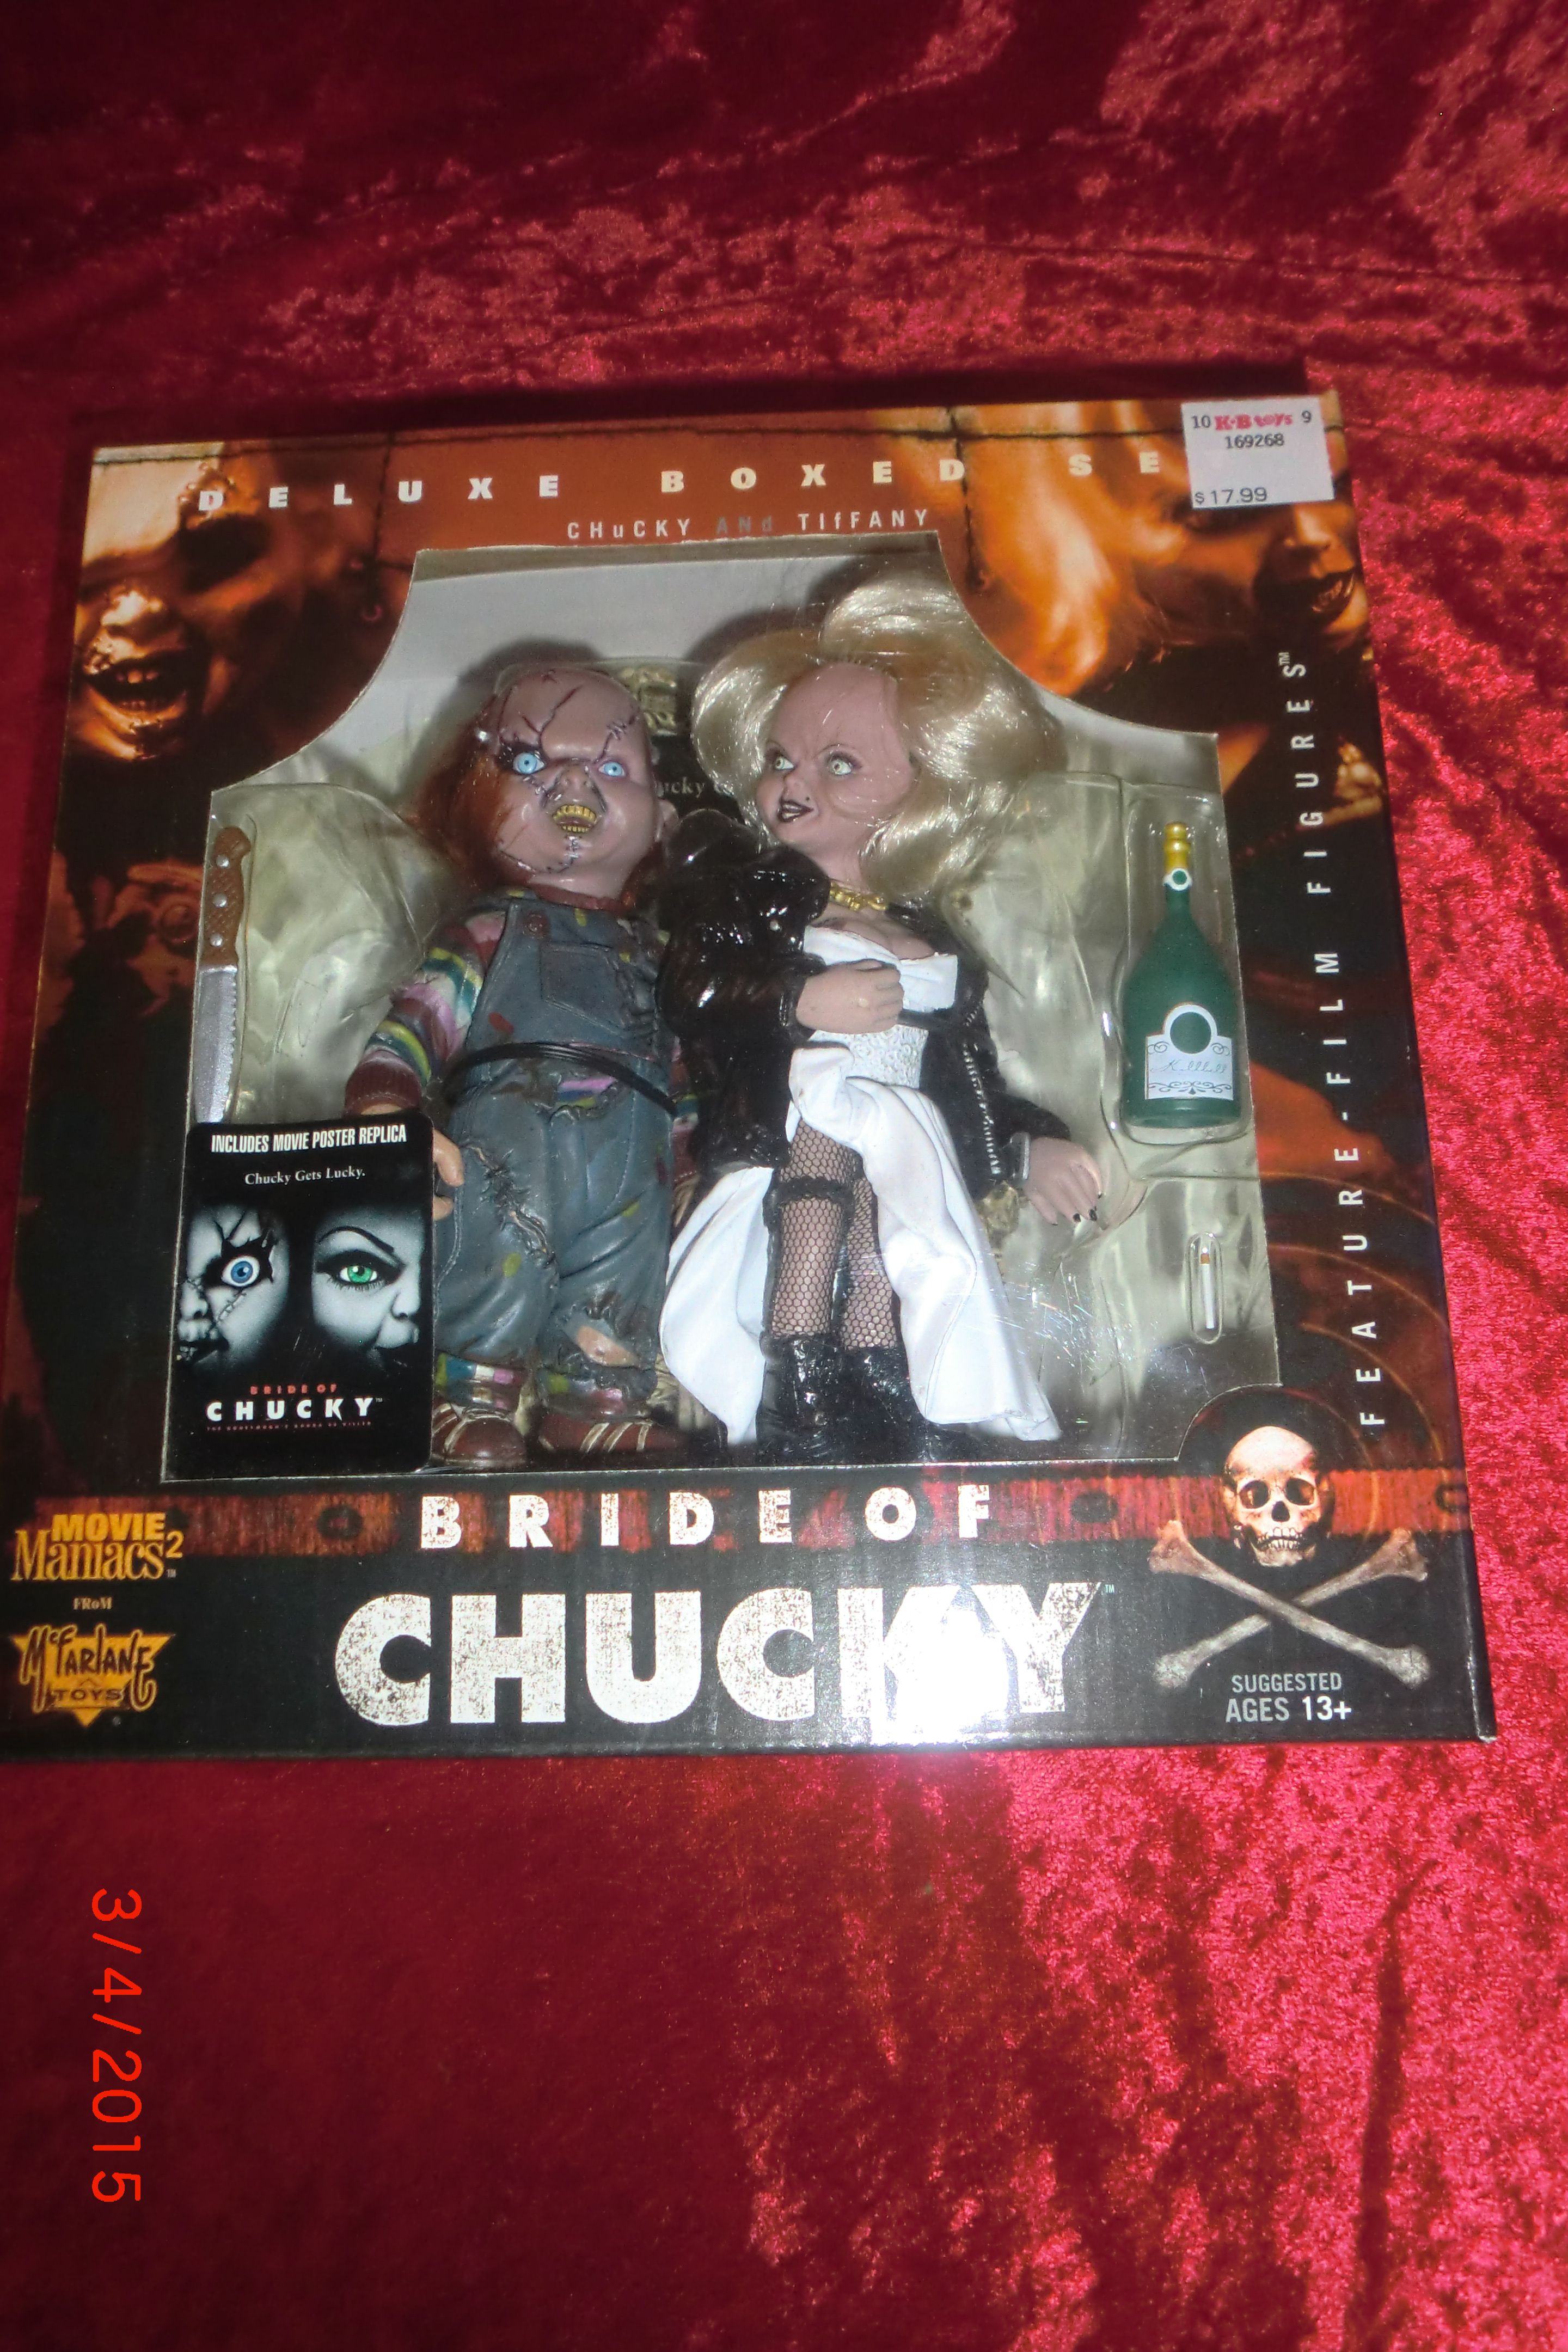 1999 mcfarlane toys movie maniacs 2 deluxe boxed set bride of chucky 1999 mcfarlane toys movie maniacs 2 deluxe boxed set bride of chucky action figures chucky and altavistaventures Images